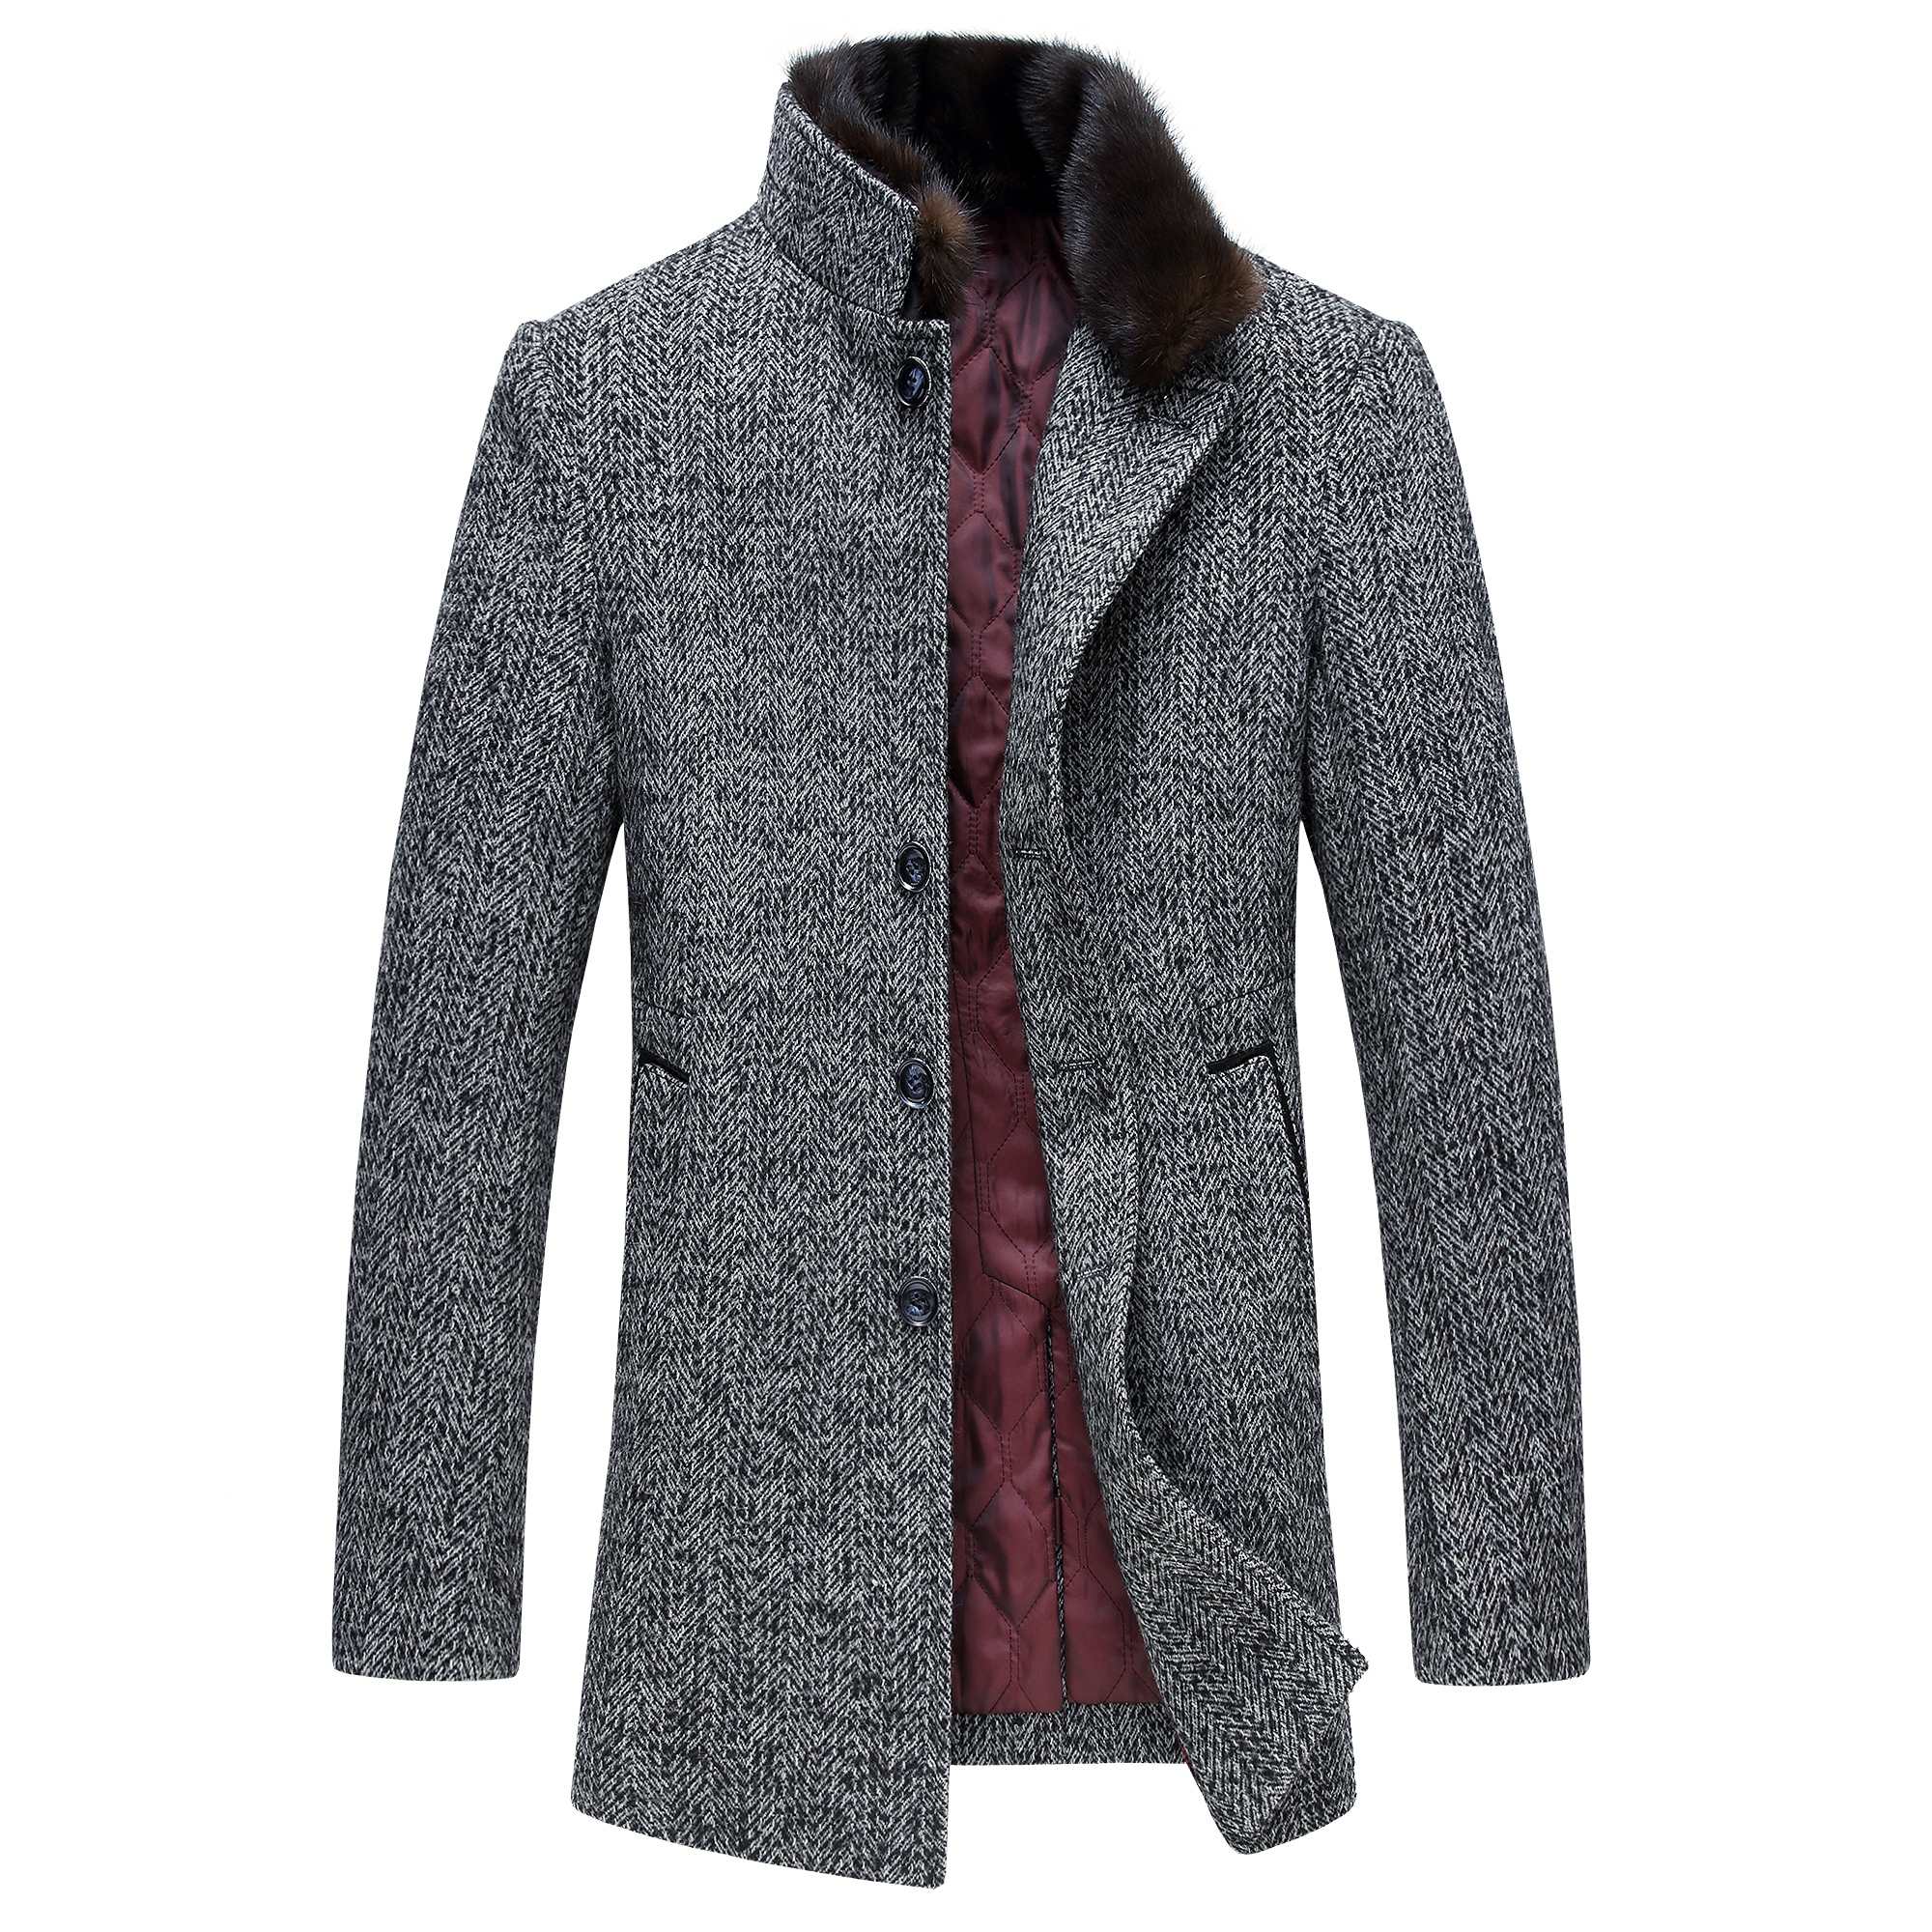 Gents online shopping